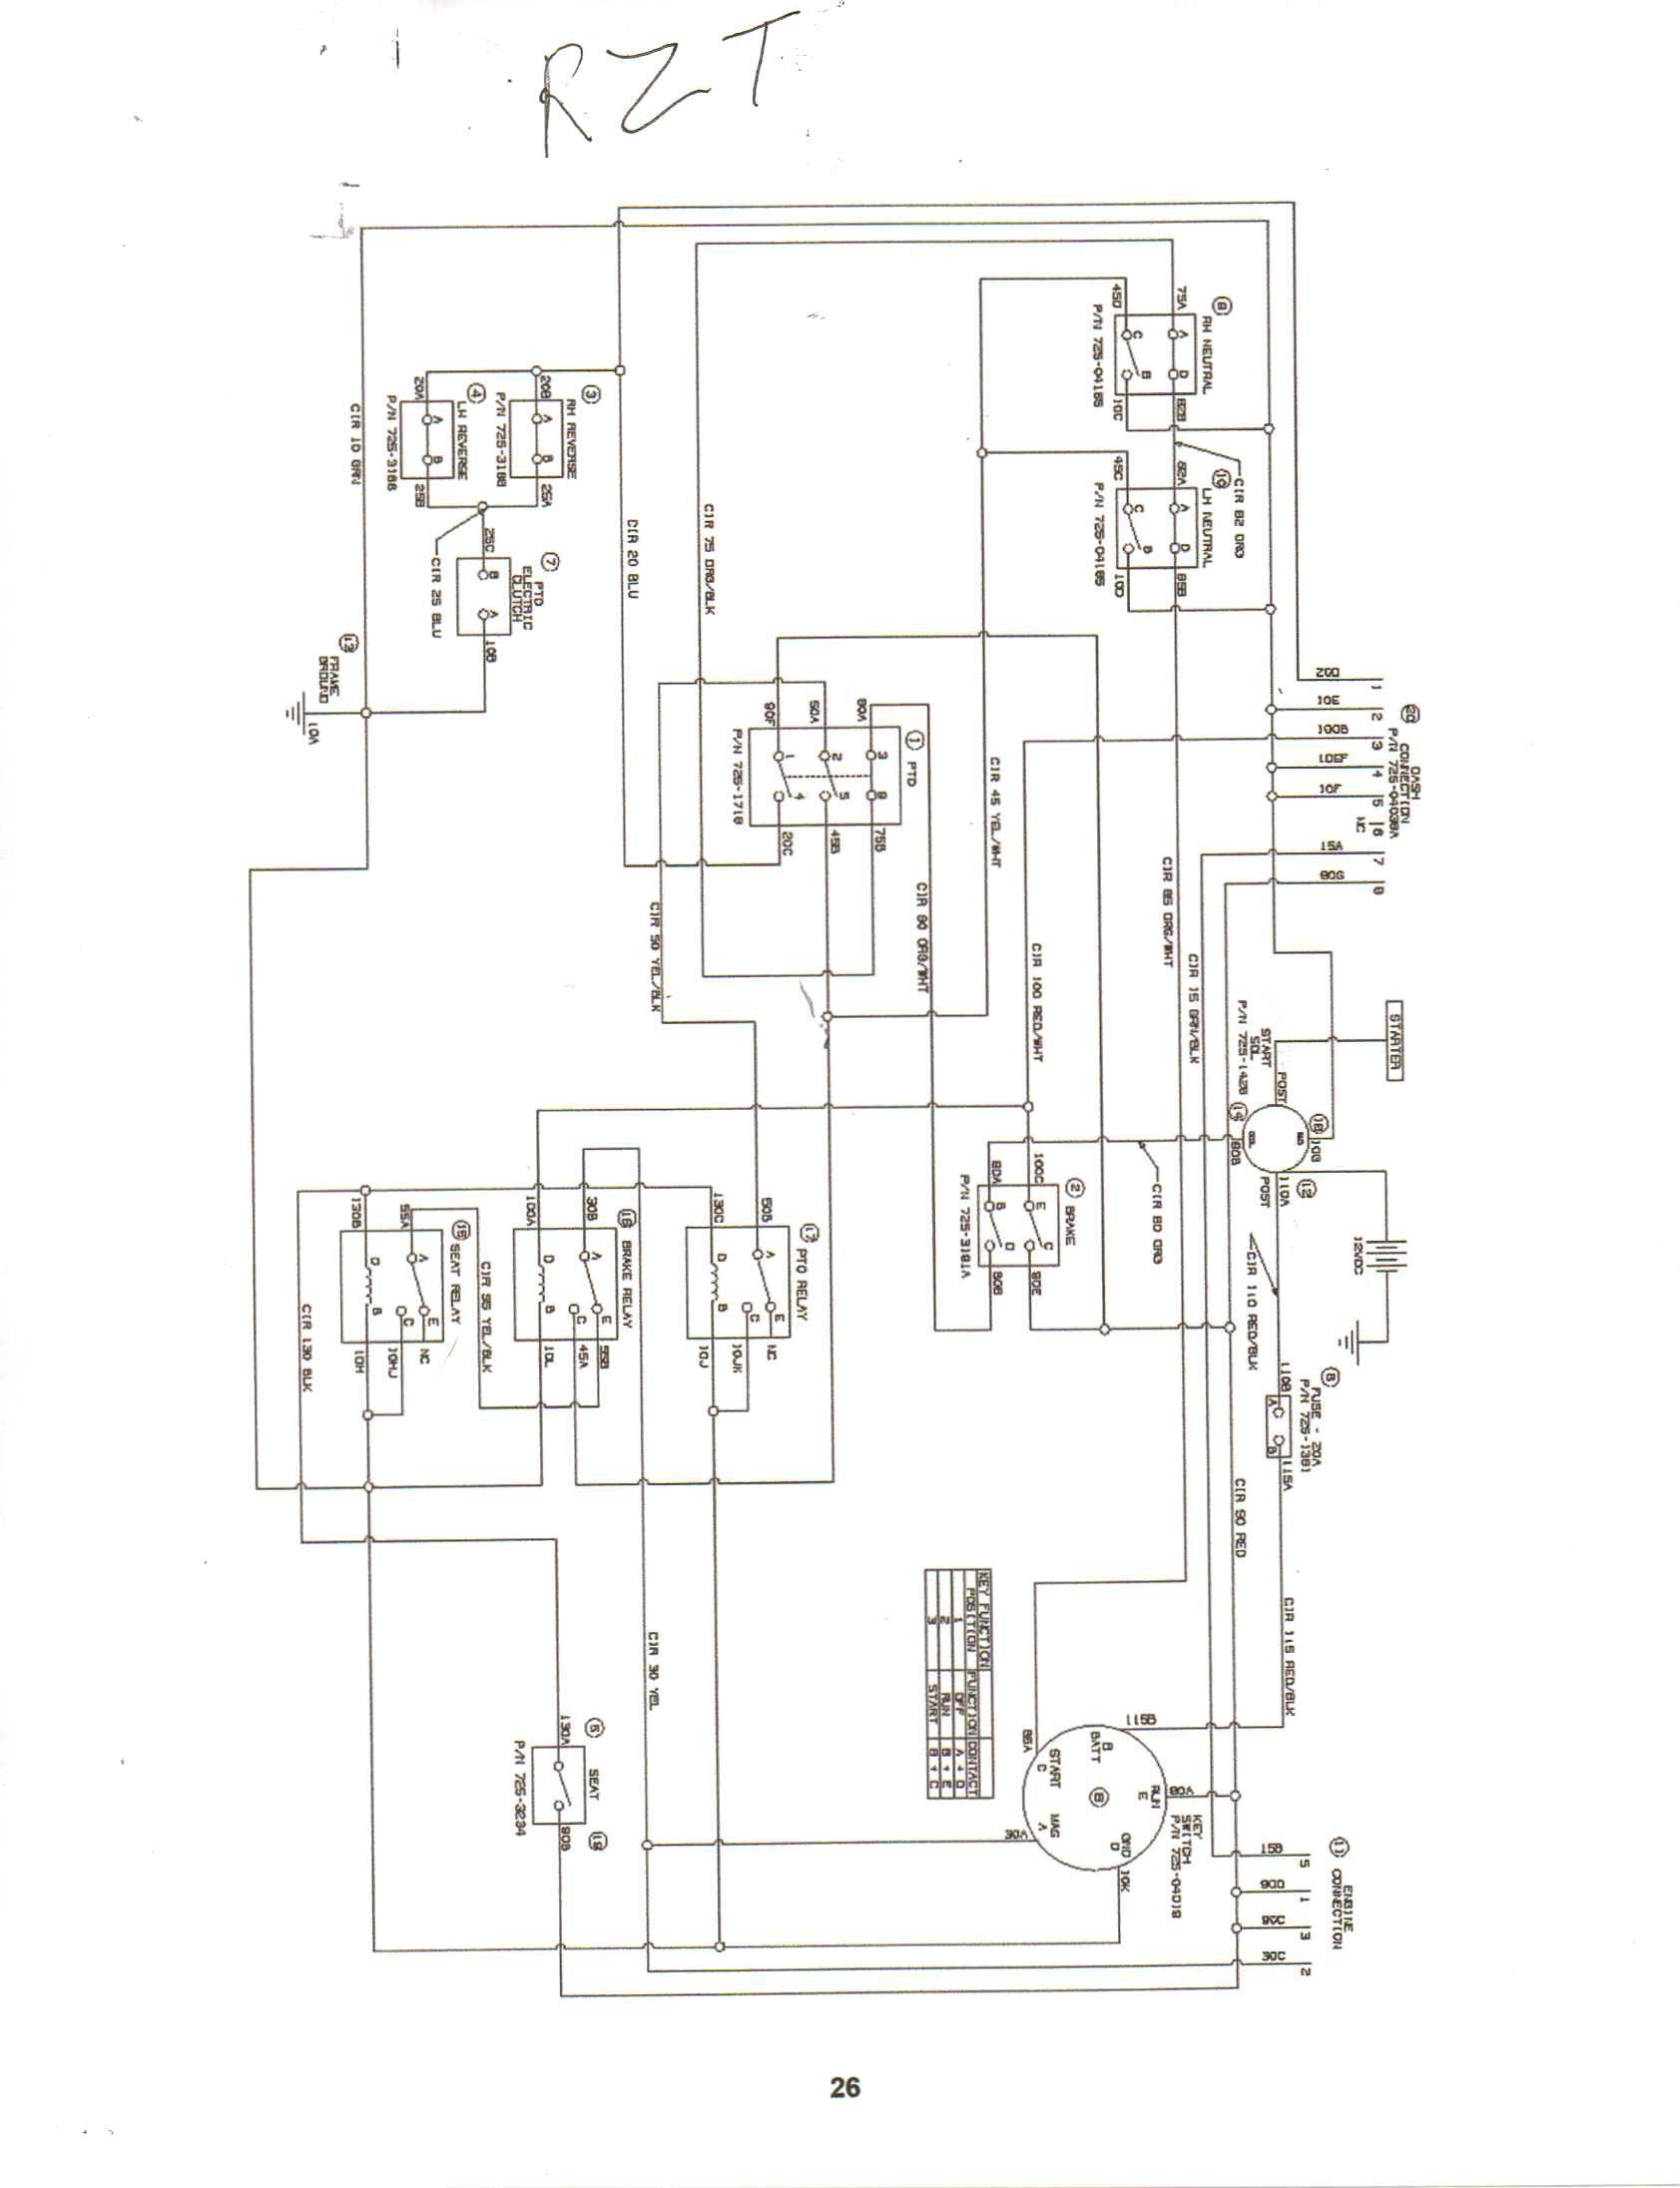 Peugeot 206 Wiring Diagram For Car Alarm